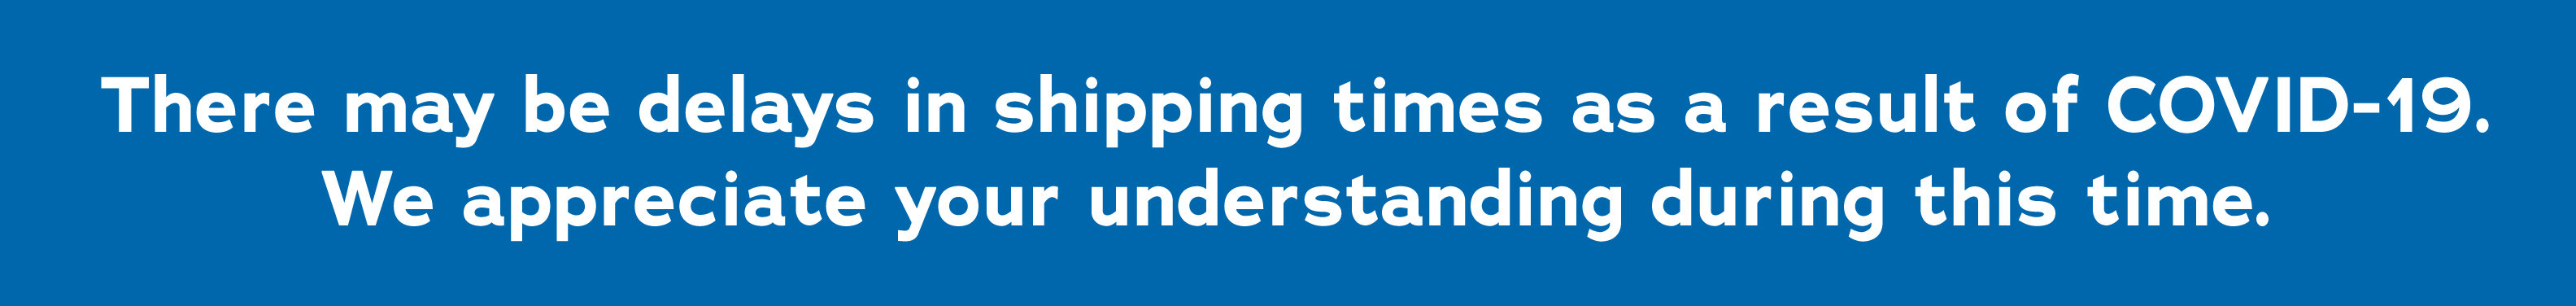 Please note there may be delays in shipping times as a result of COVID-19. We appreciate your understanding during this time.